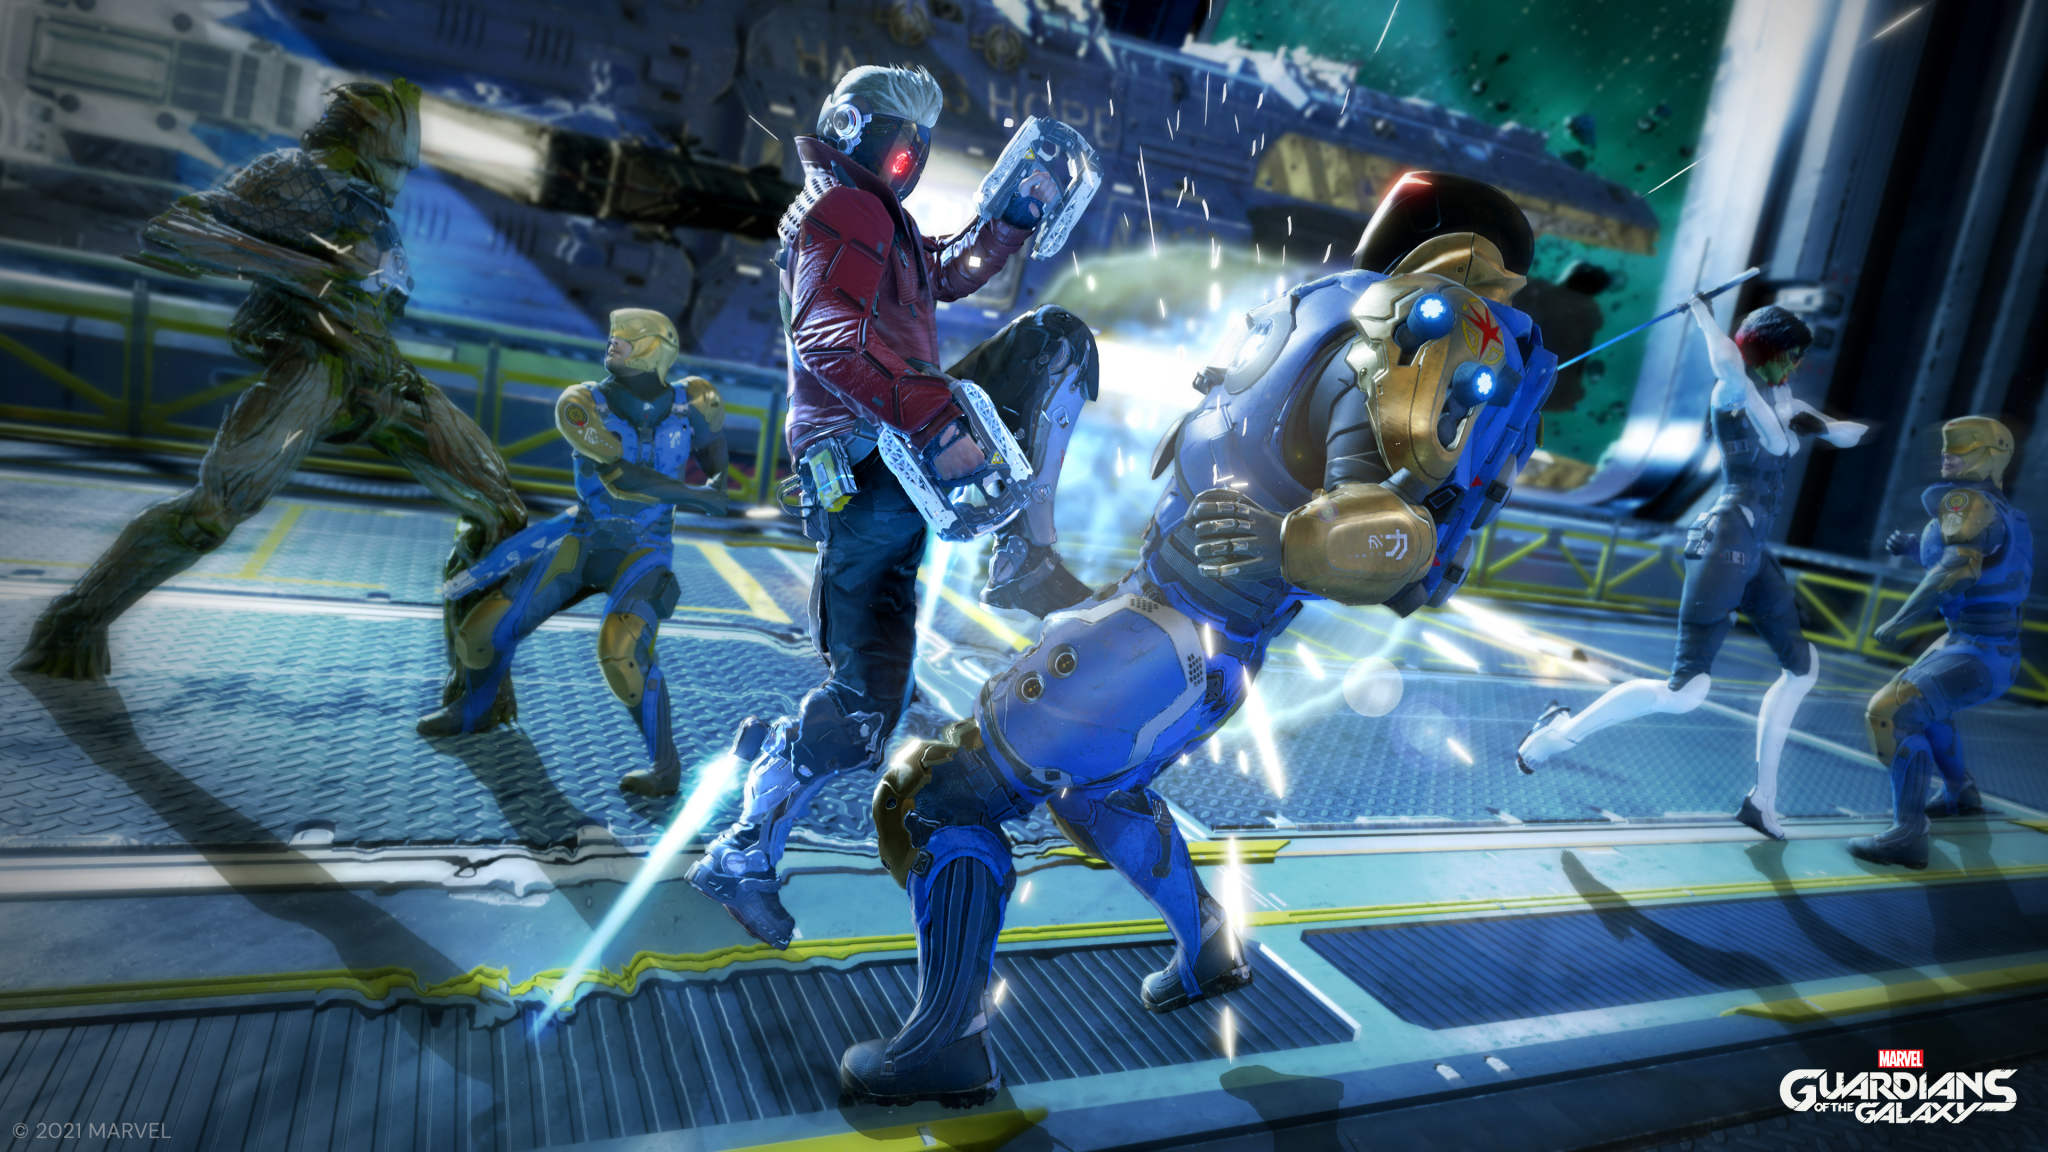 Guardians of the Galaxy team combat